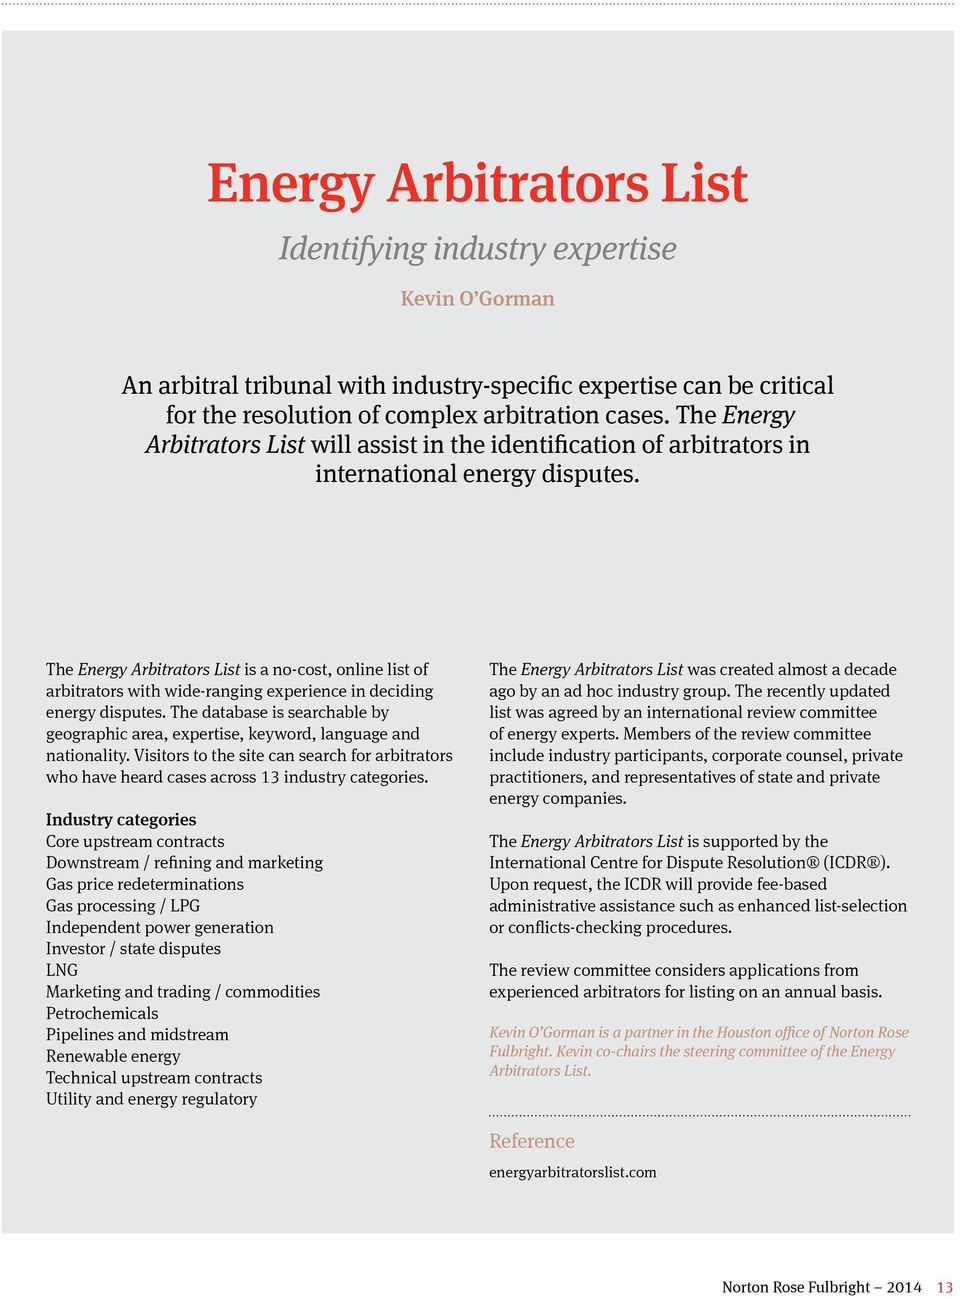 The Energy Arbitrators List is a no-cost, online list of arbitrators with wide-ranging experience in deciding energy disputes.